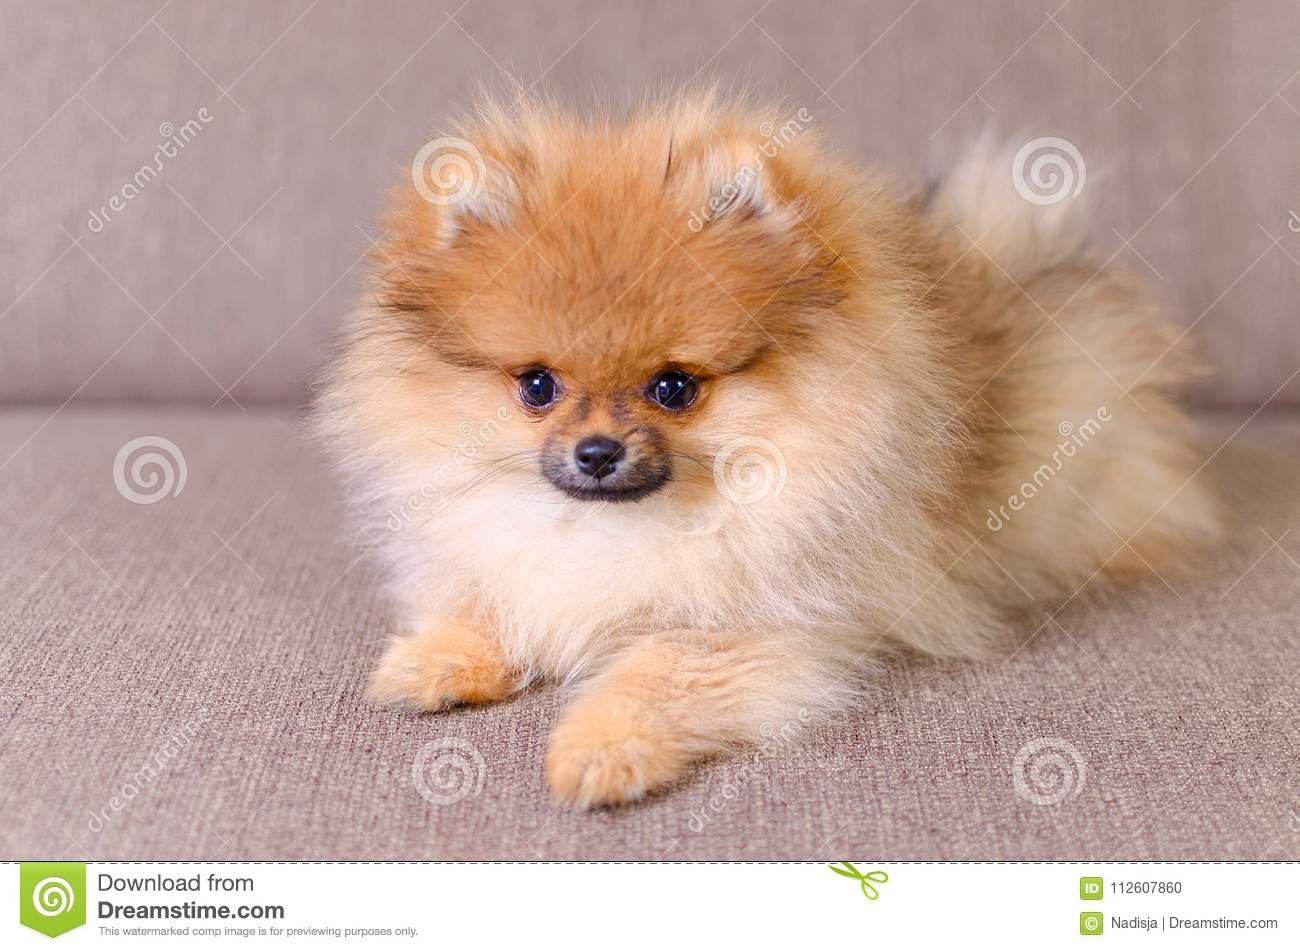 Adorable Fluffy Pomeranian Puppy Lying On The Couch Stock Photo Image Of Golden German 112607860